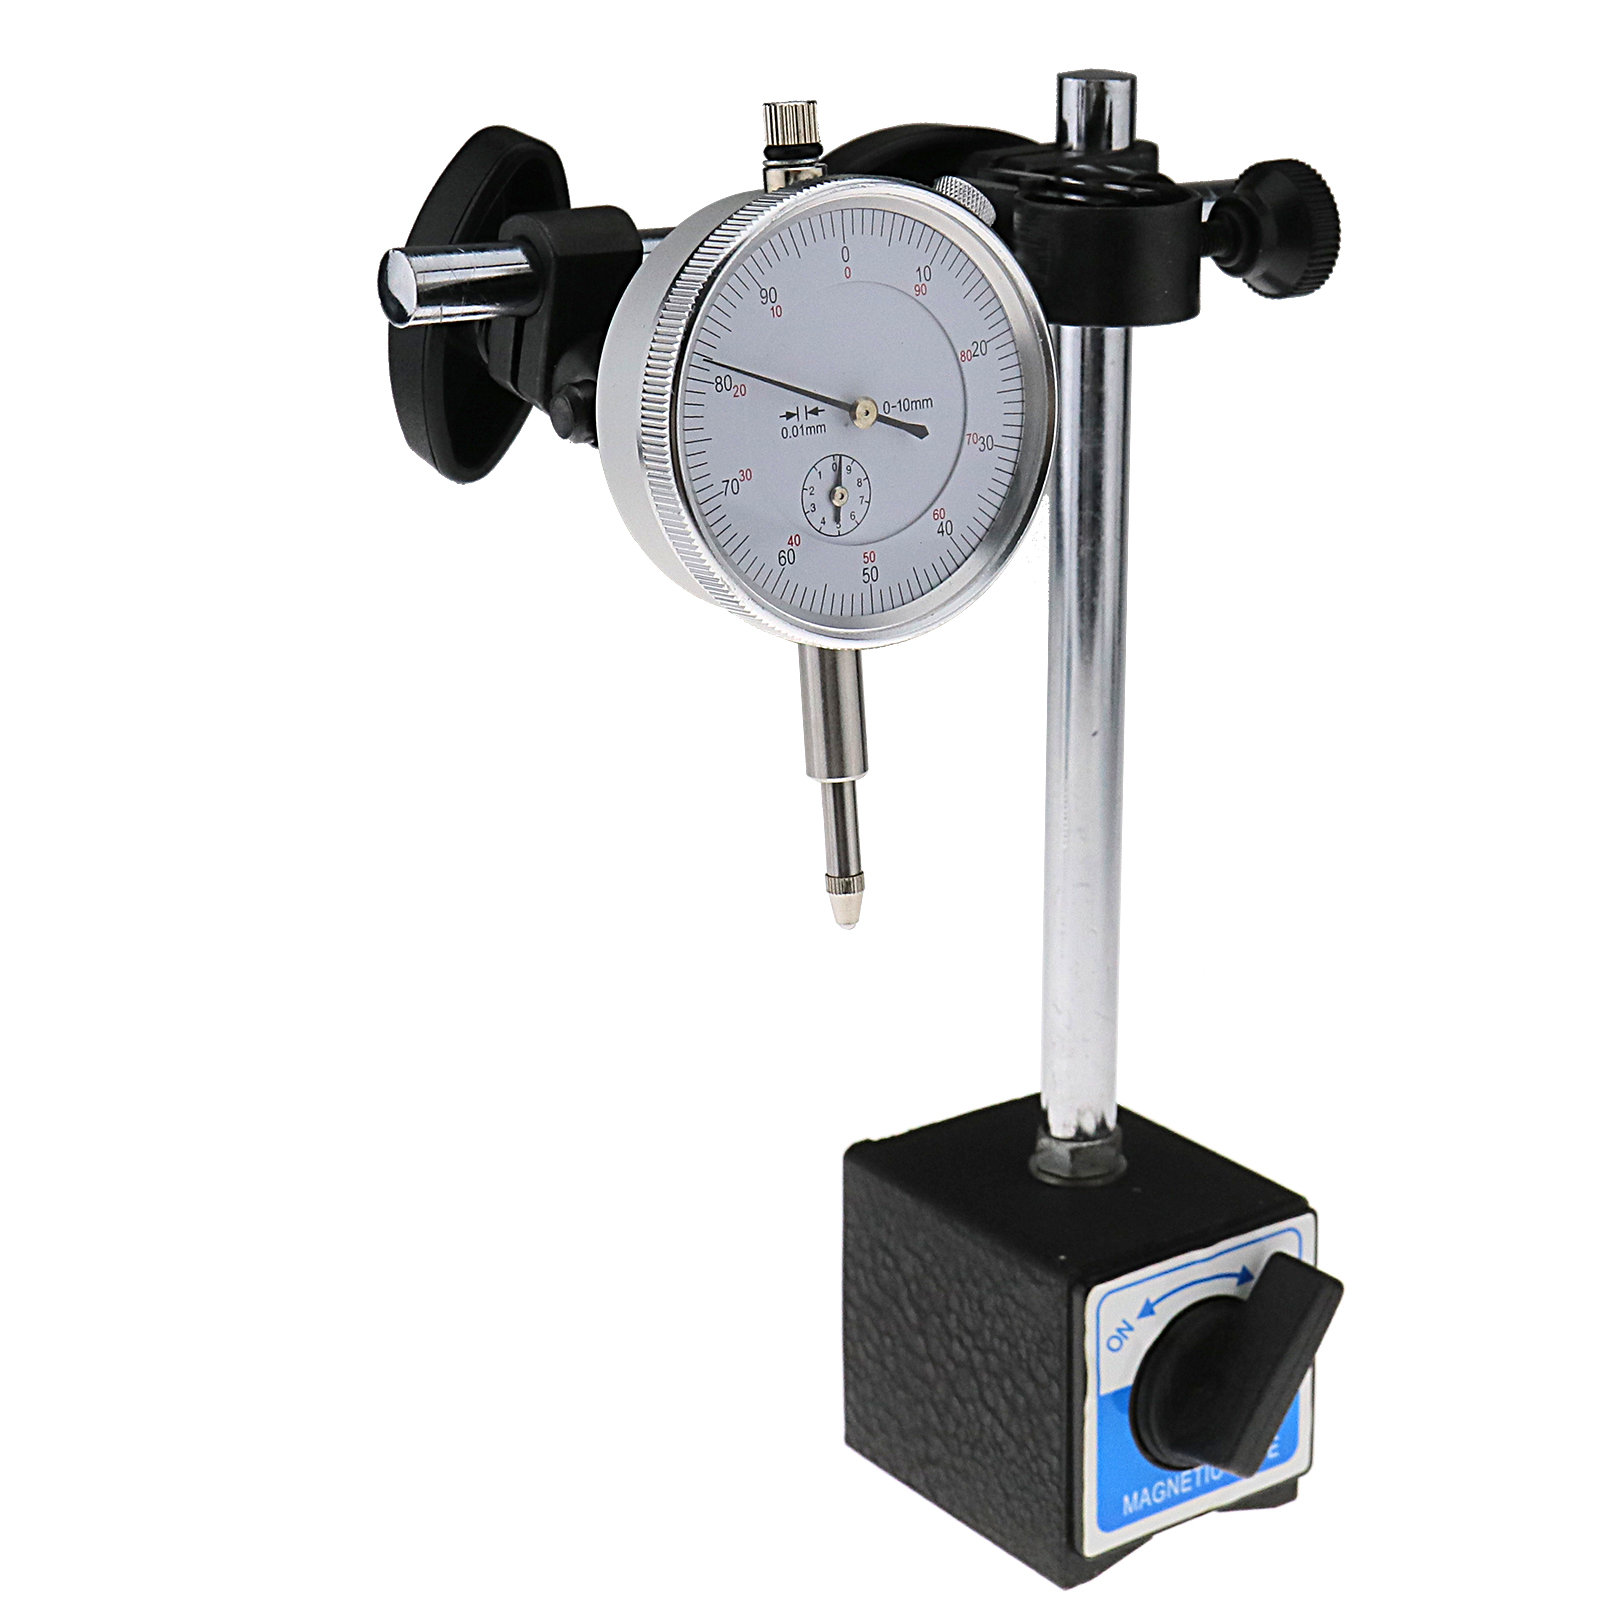 Magnetic Boom Arm : Heavy duty dti stand w magnetic base dial test indicator